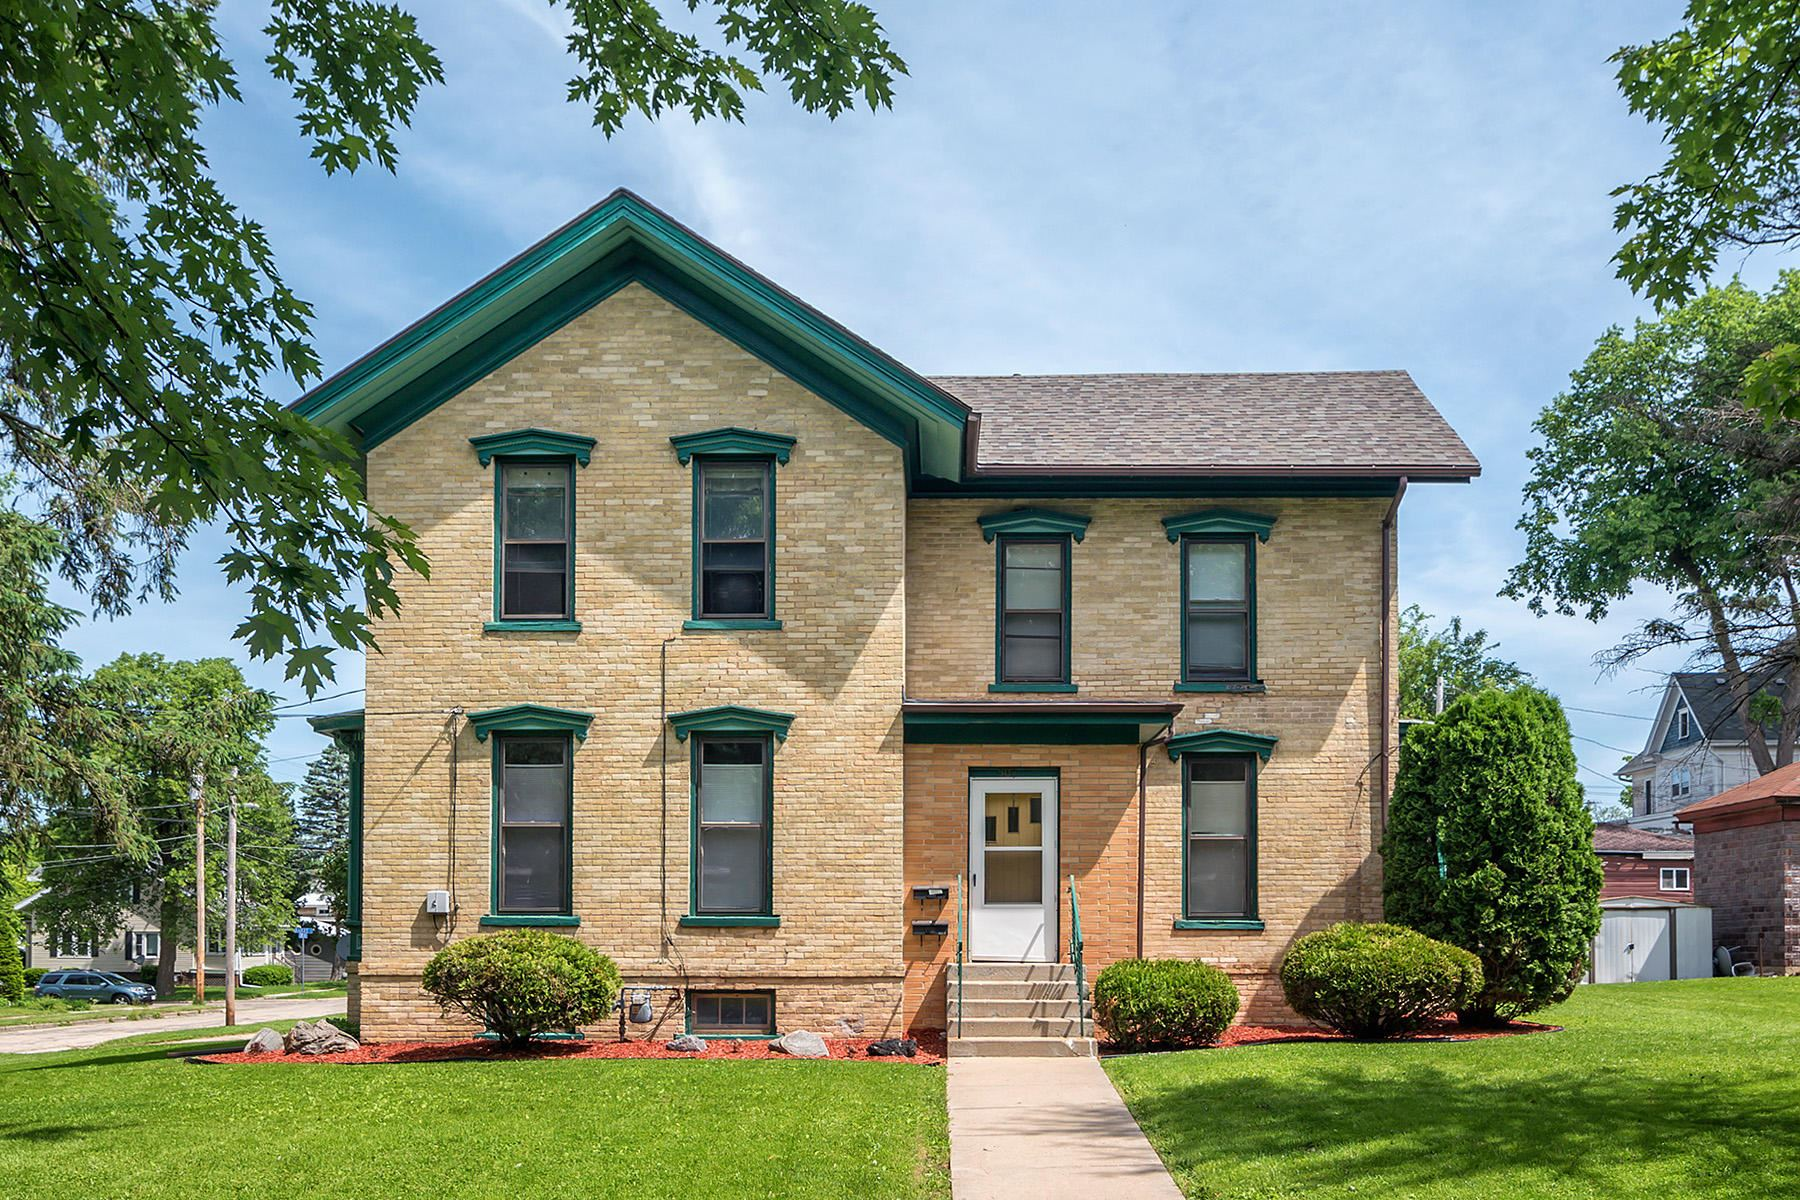 504 Clyman St, Watertown, WI 53094 - #: 1692782